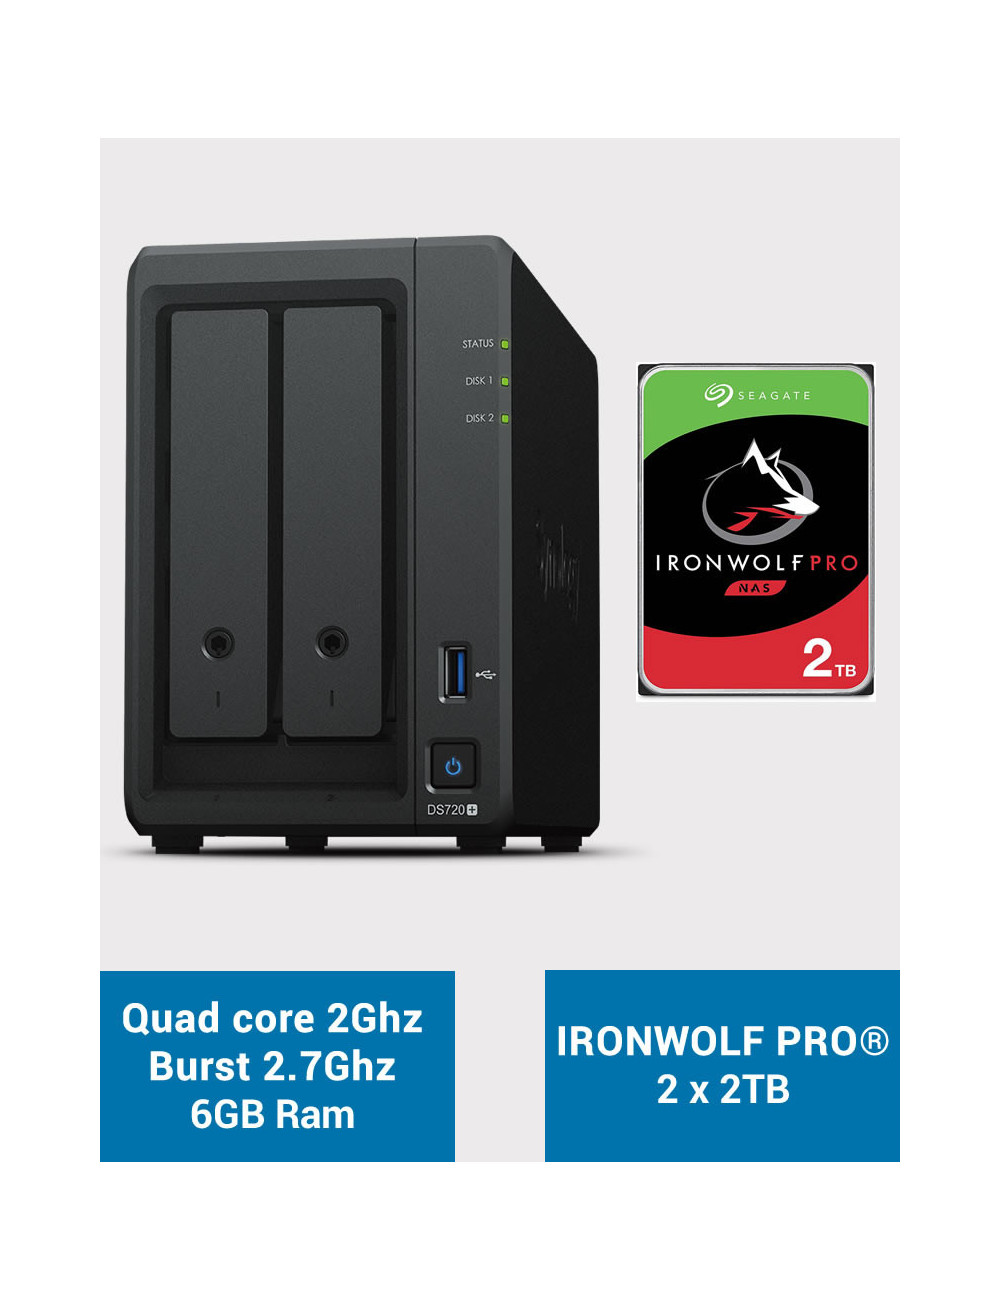 Synology DS720+ 6Go Serveur NAS IRONWOLF PRO 4To (2x2To)